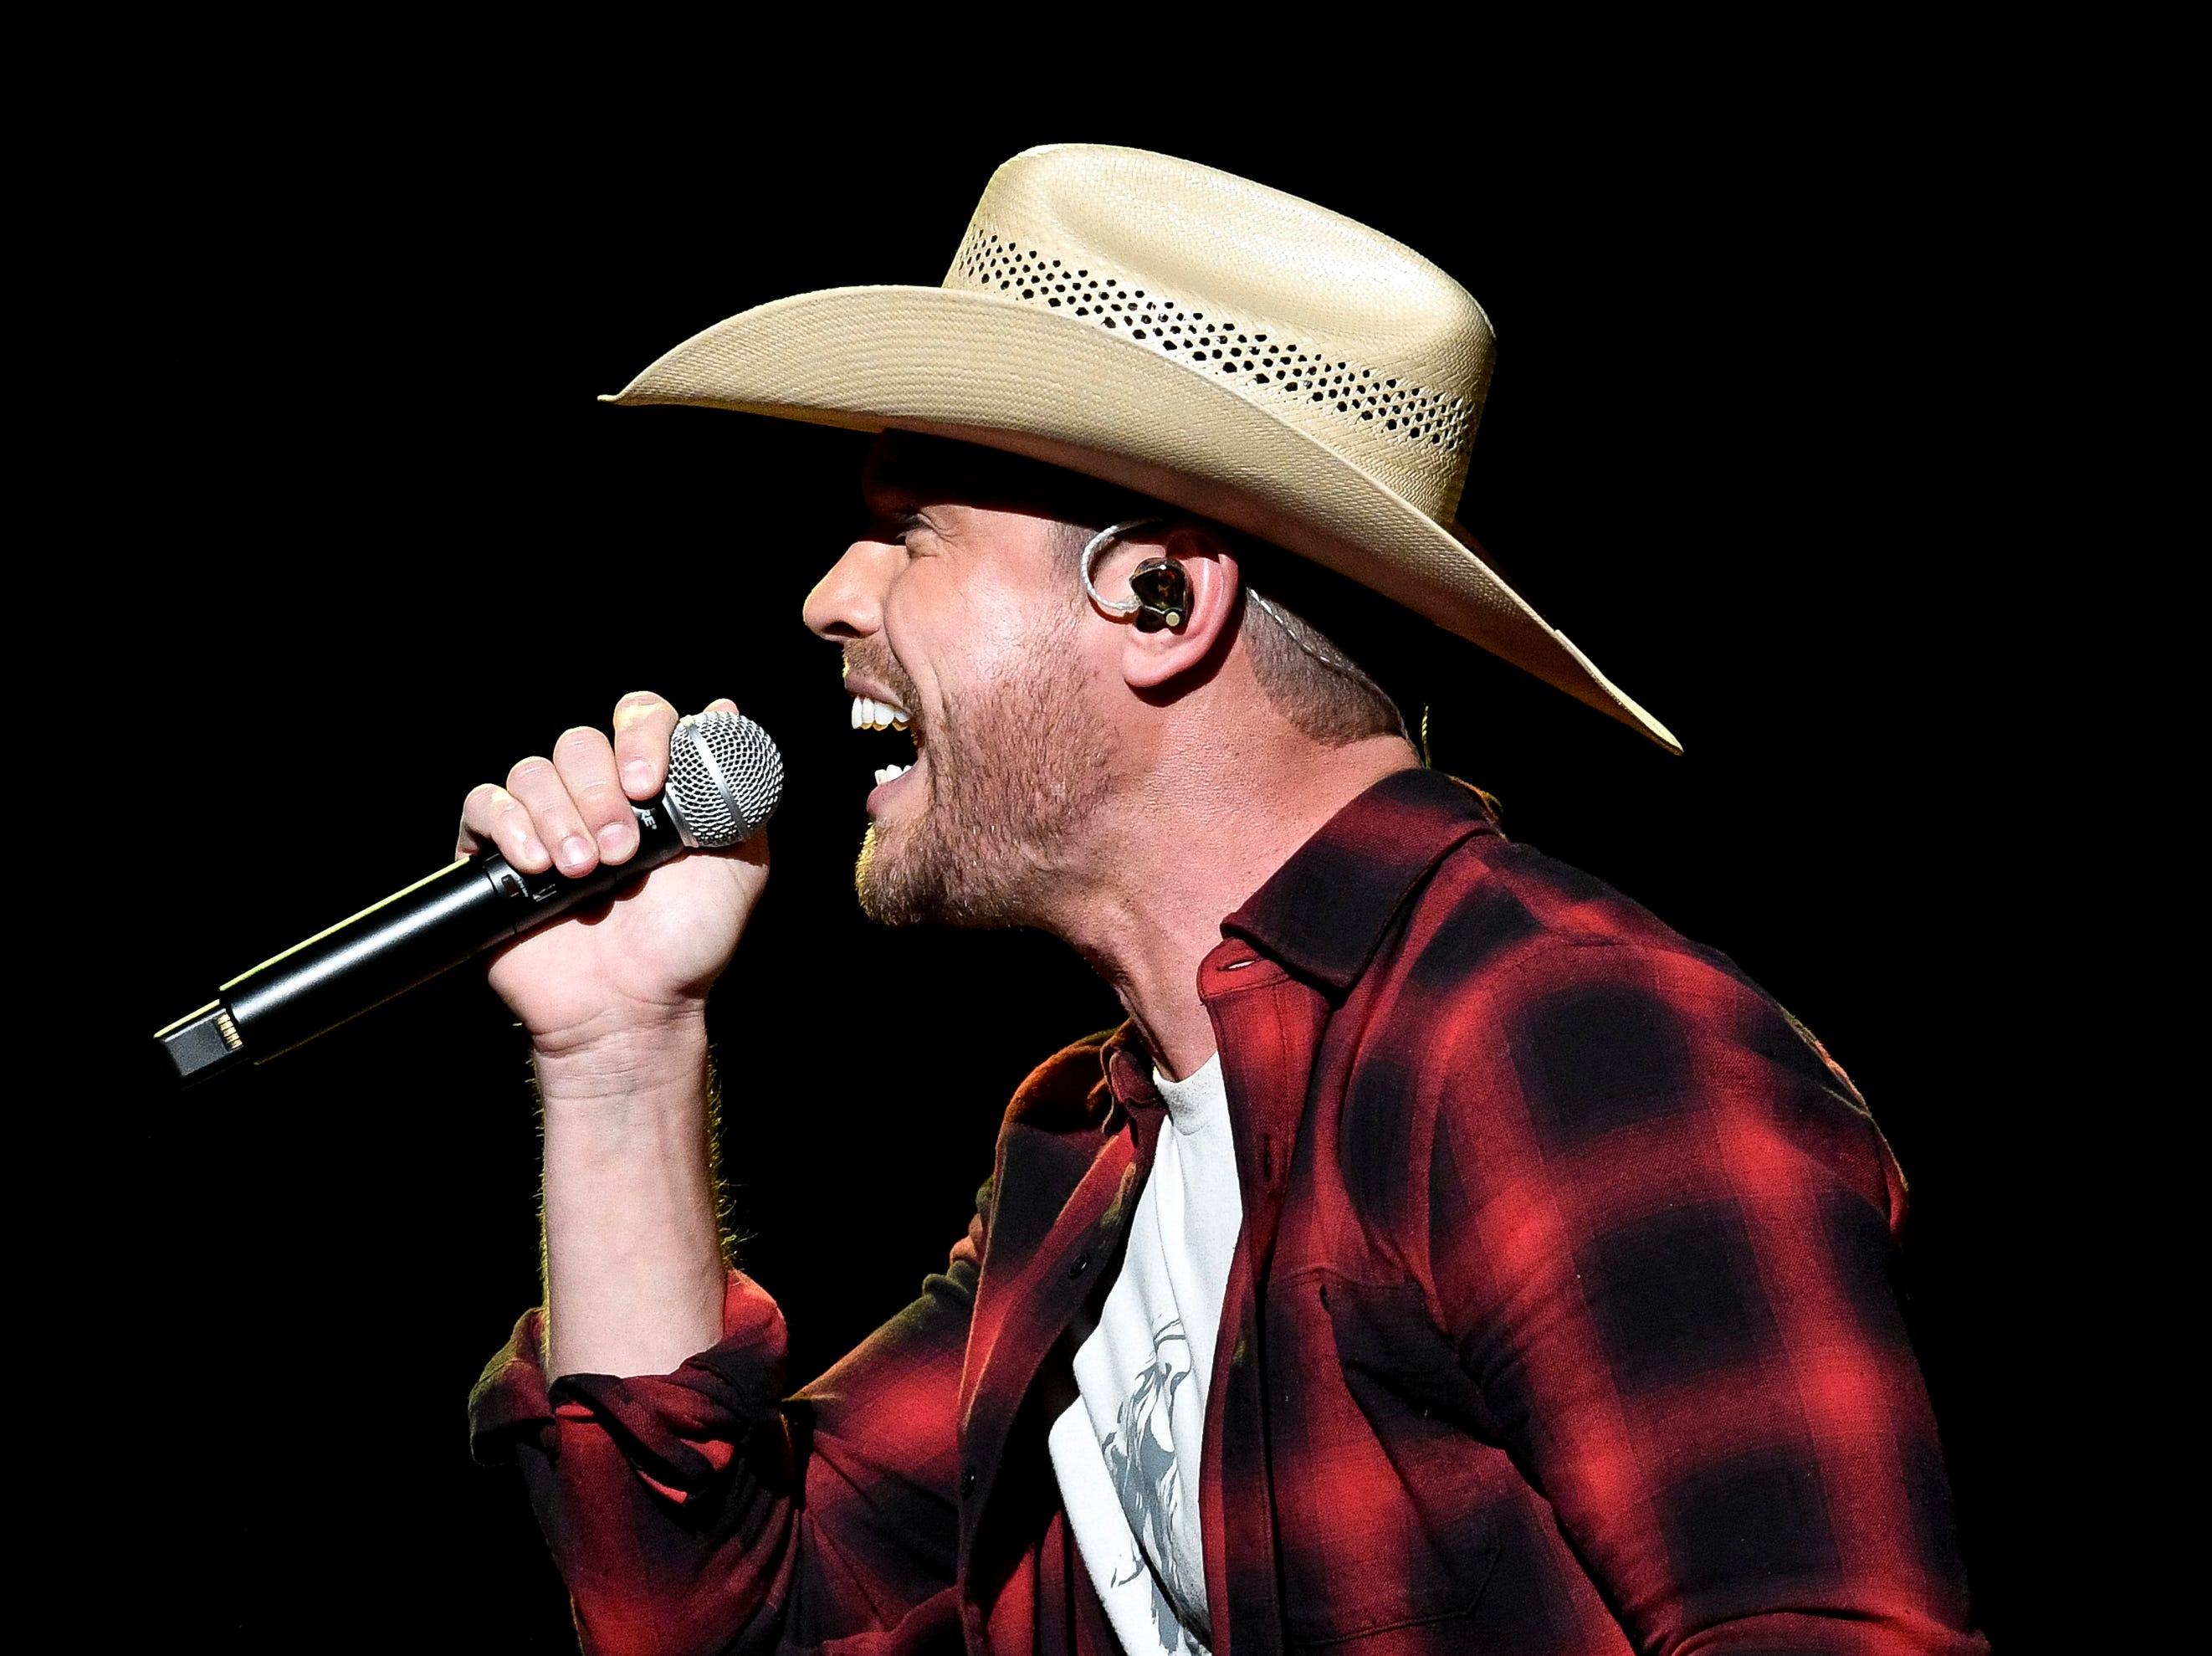 Dustin Lynch performs during the C'Ya On The Flipside Benefit Concert at the Grand Ole Opry House in Nashville, Tenn., Wednesday, Jan. 9, 2019.